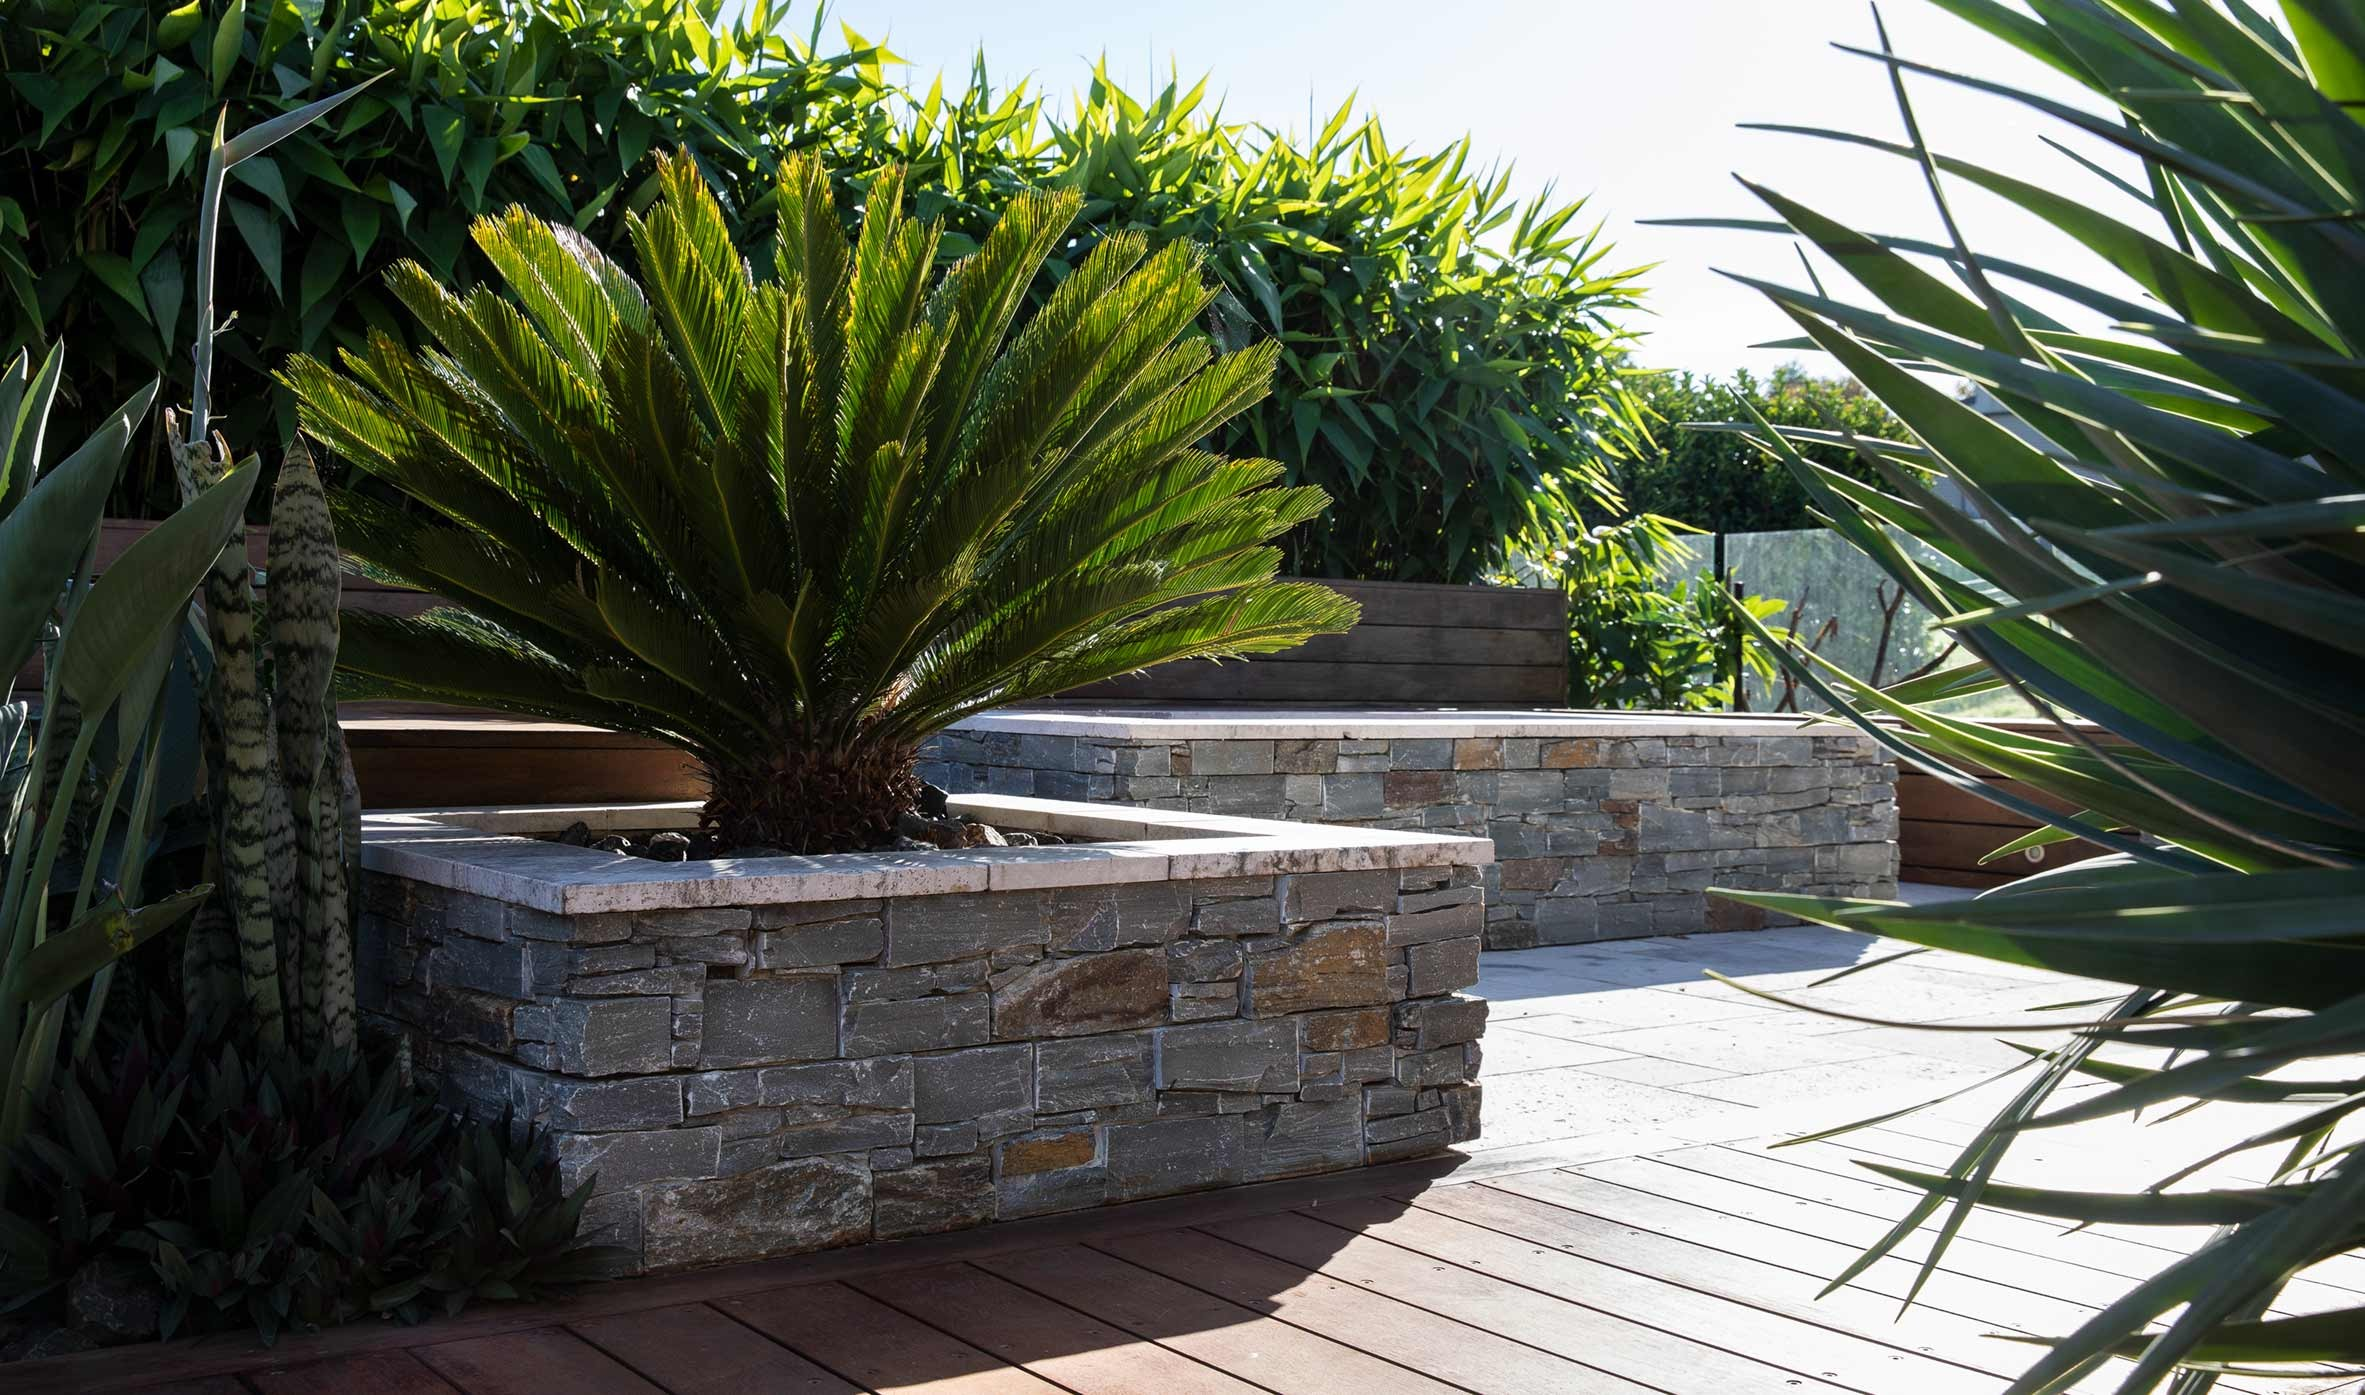 Wall-Cladding-and-Stacked-Stones Thumbnails wall-cladding-and-stacked-stones-32